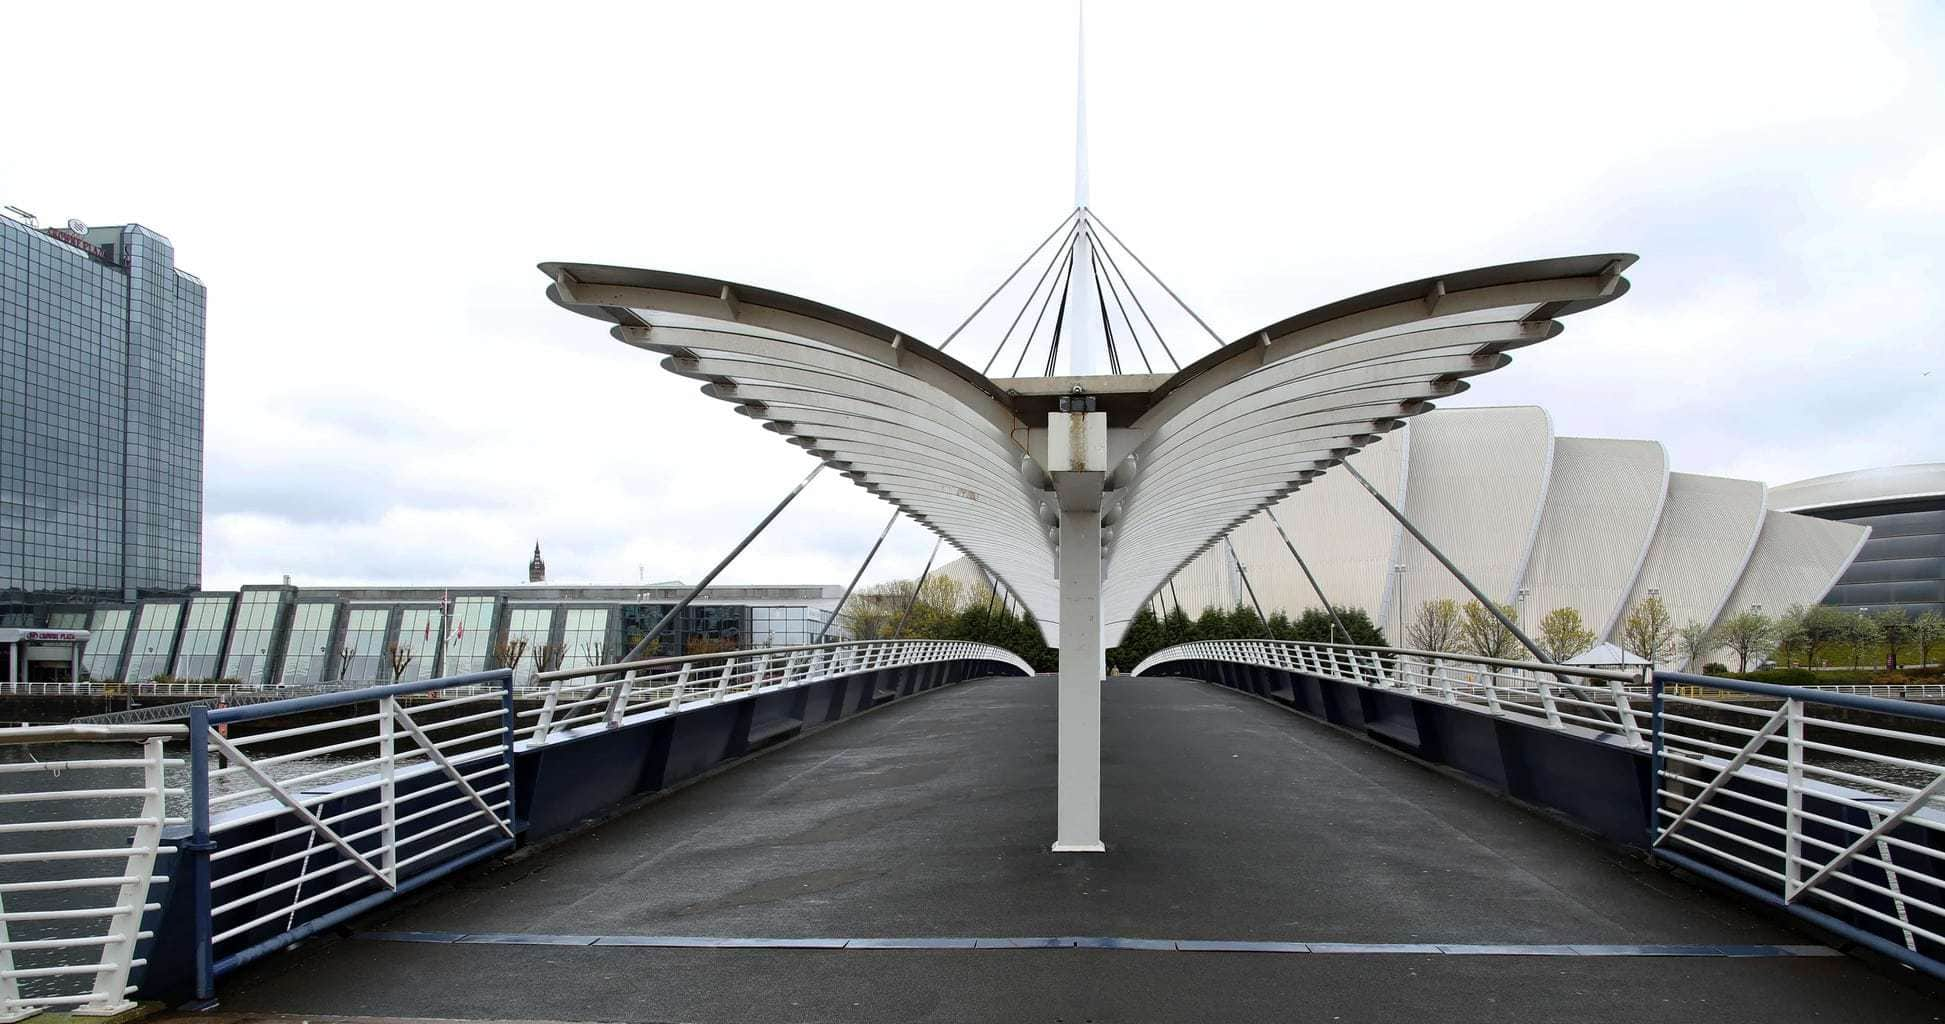 This shot was taken of the rain canopy on the Bridge next to the science centre in Glasgow G51 1da. By Dpi Photography